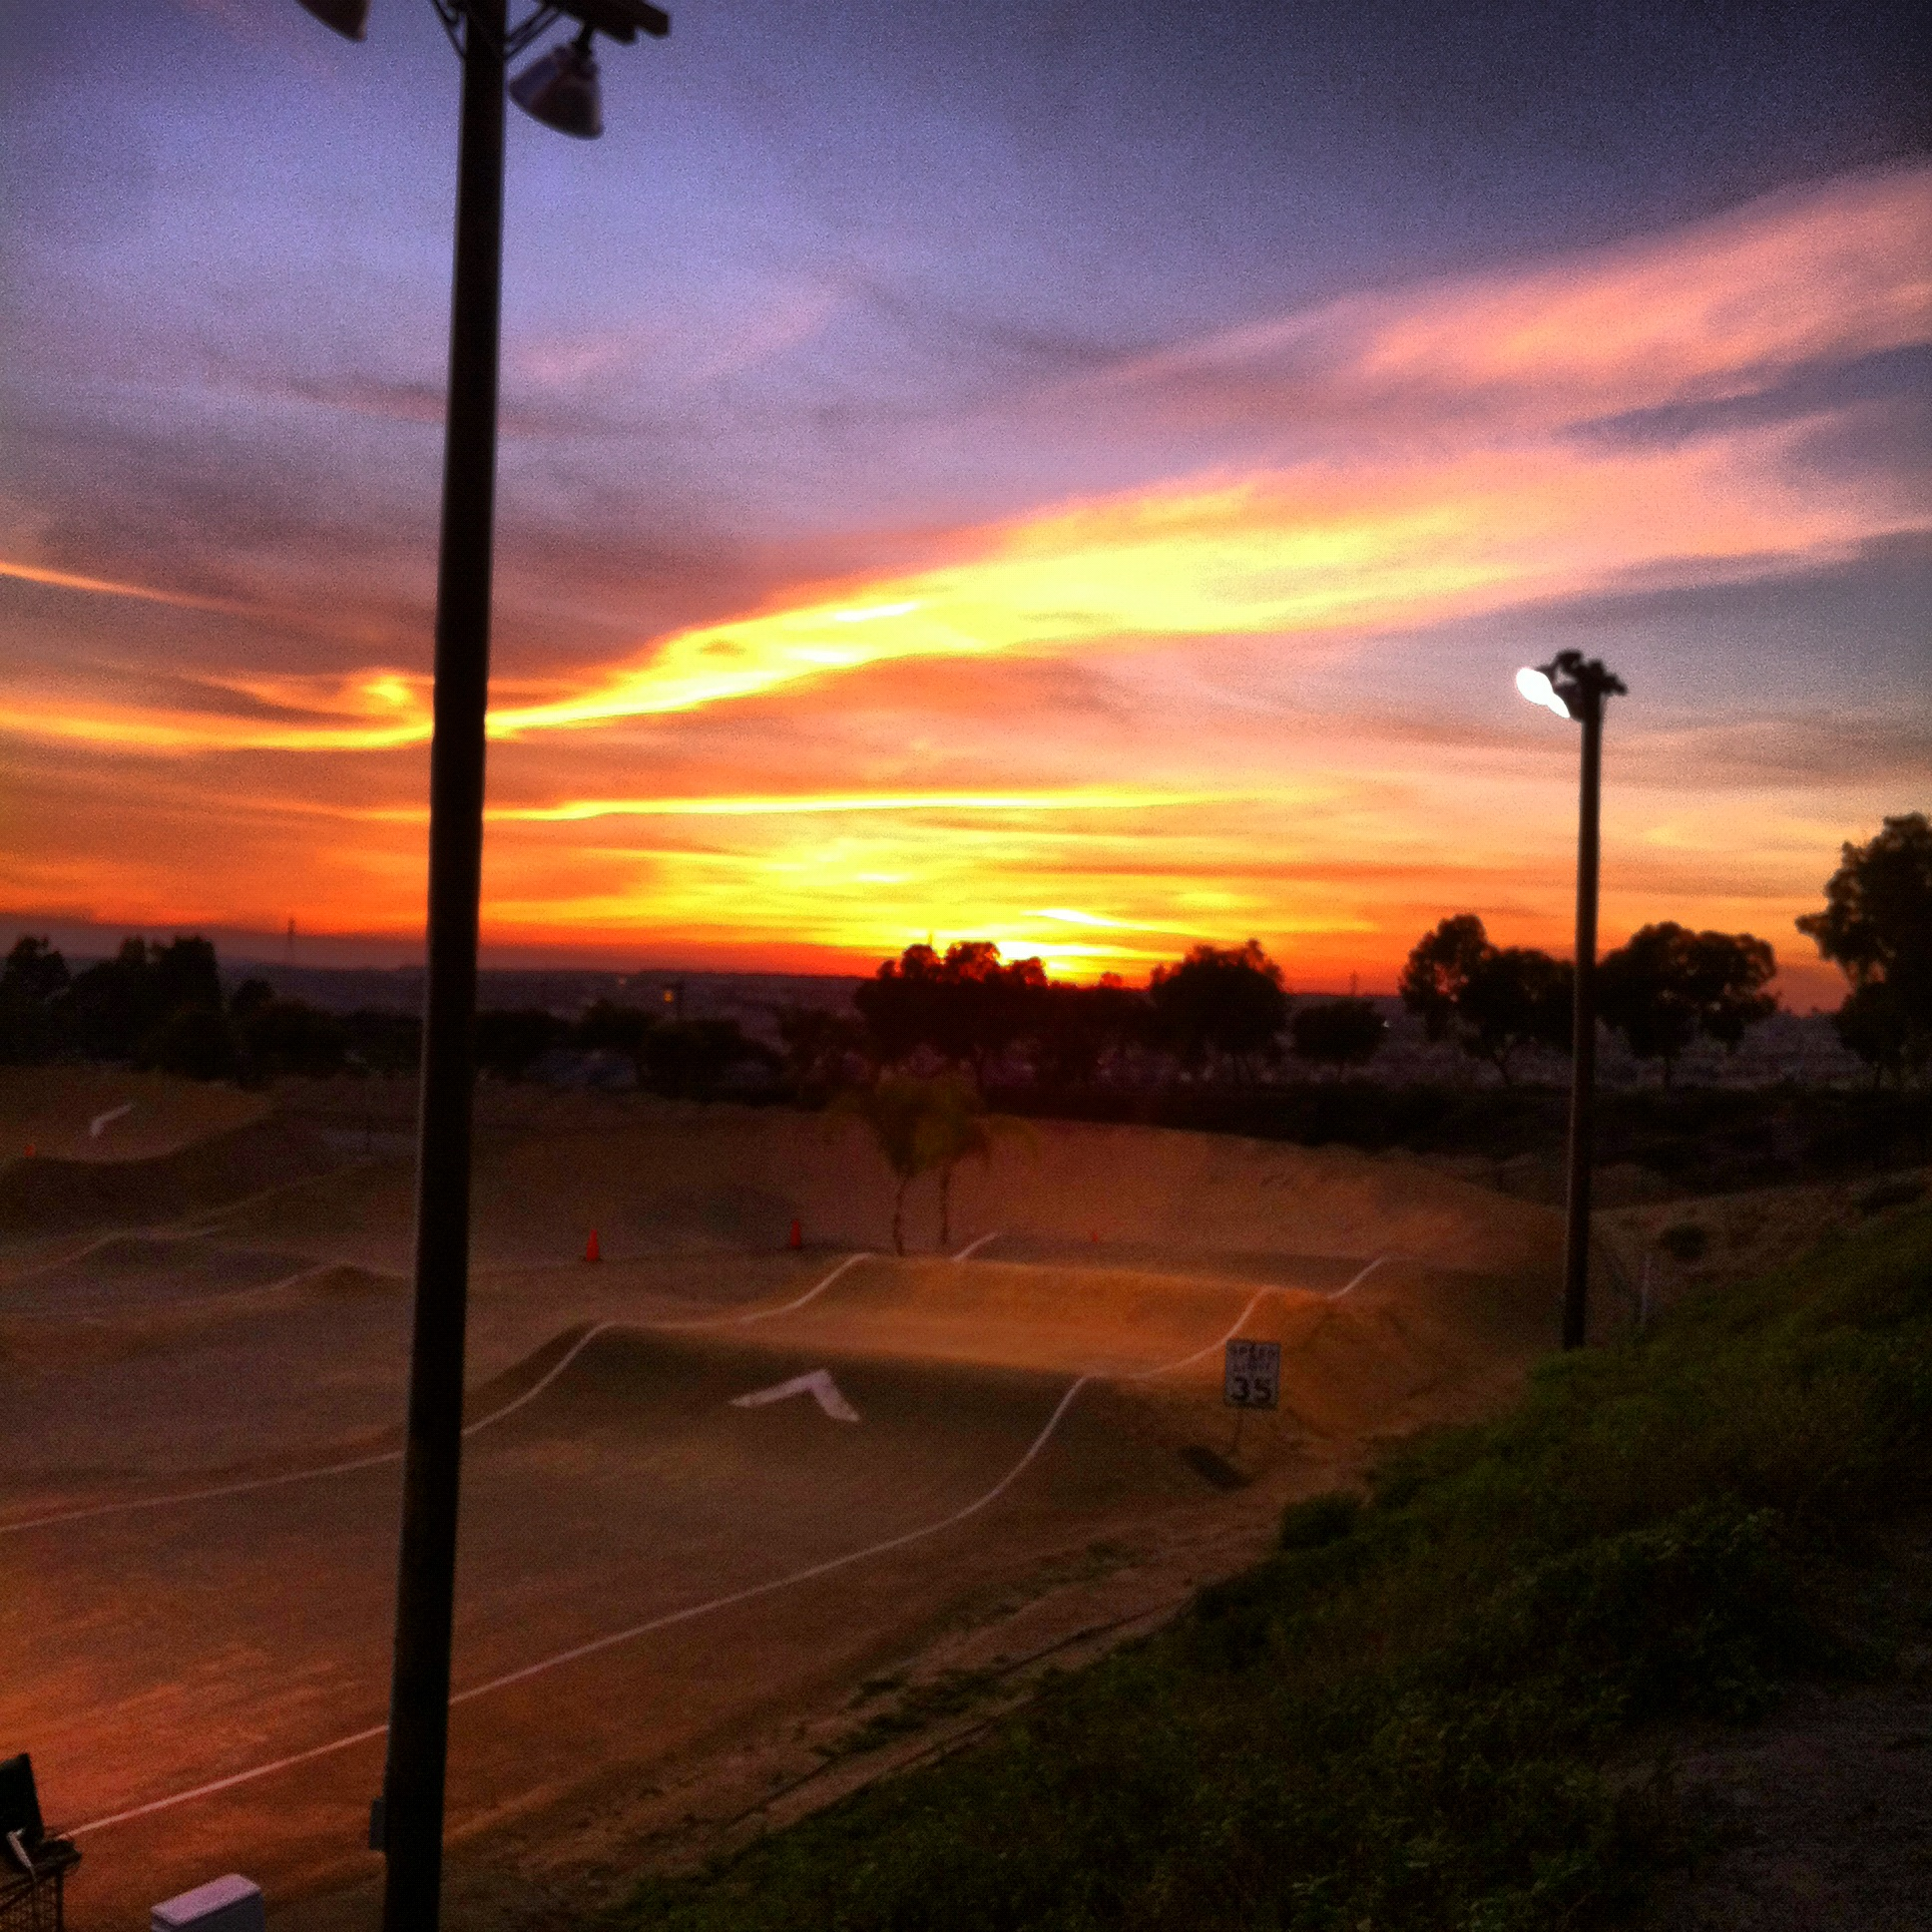 sunset at the track